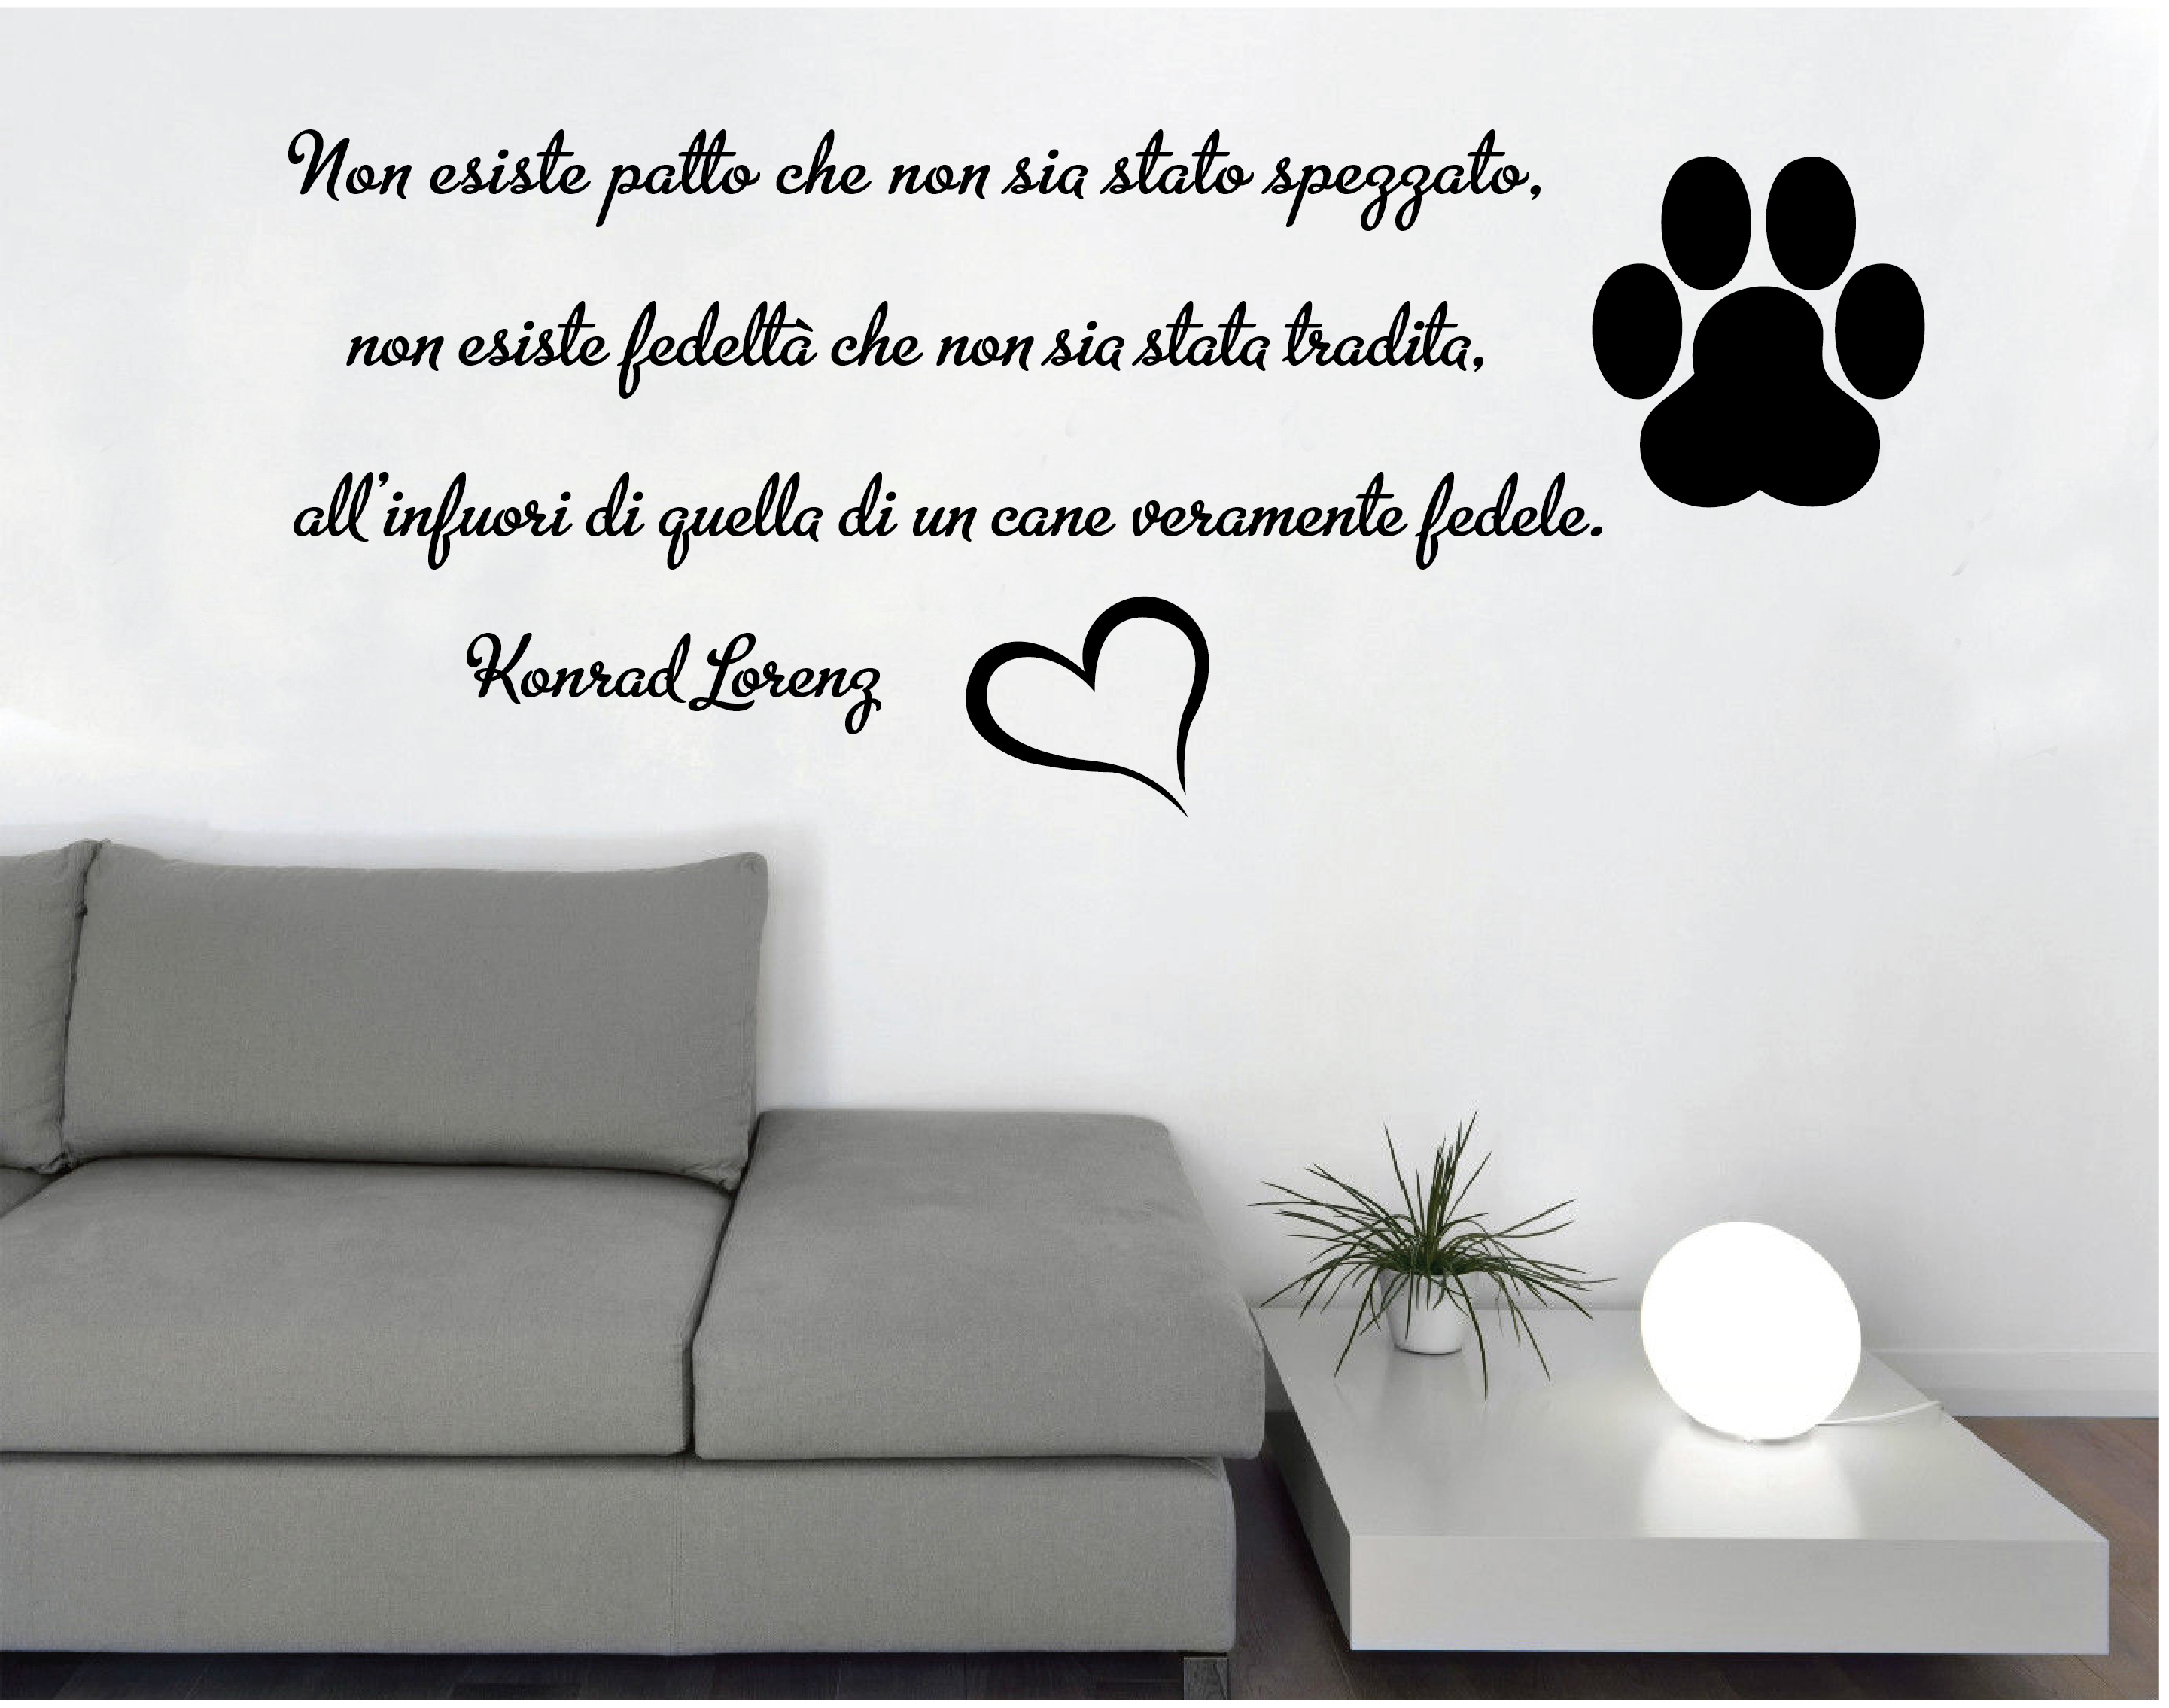 wall stickers adesivi murali frase cane fedele parete muro dog lorentz casa ebay. Black Bedroom Furniture Sets. Home Design Ideas